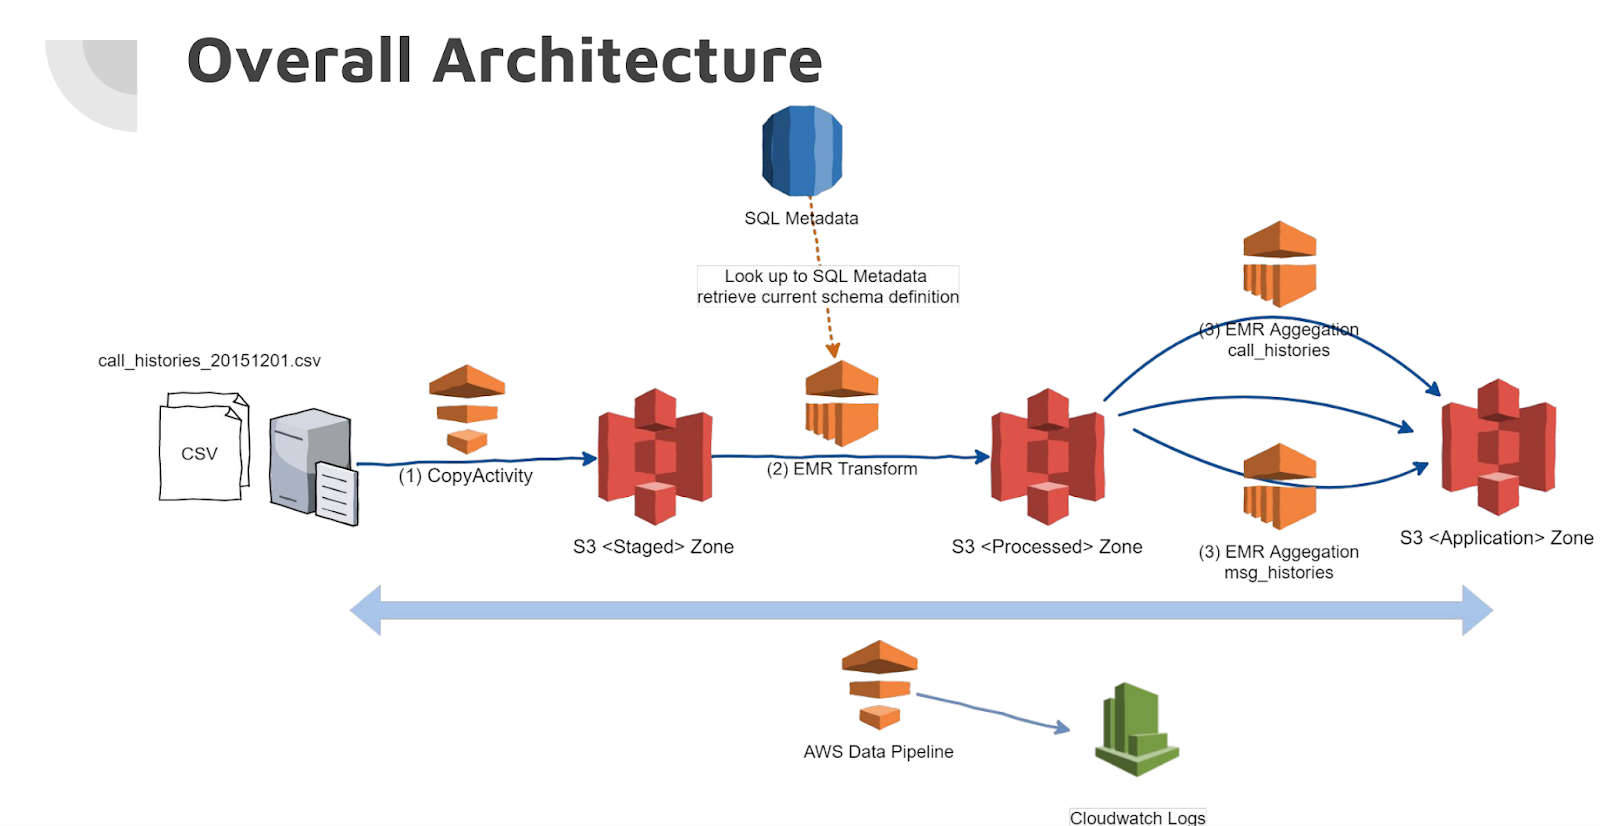 [Slide] Build simple data pipeline for ETL and data aggregation on AWS